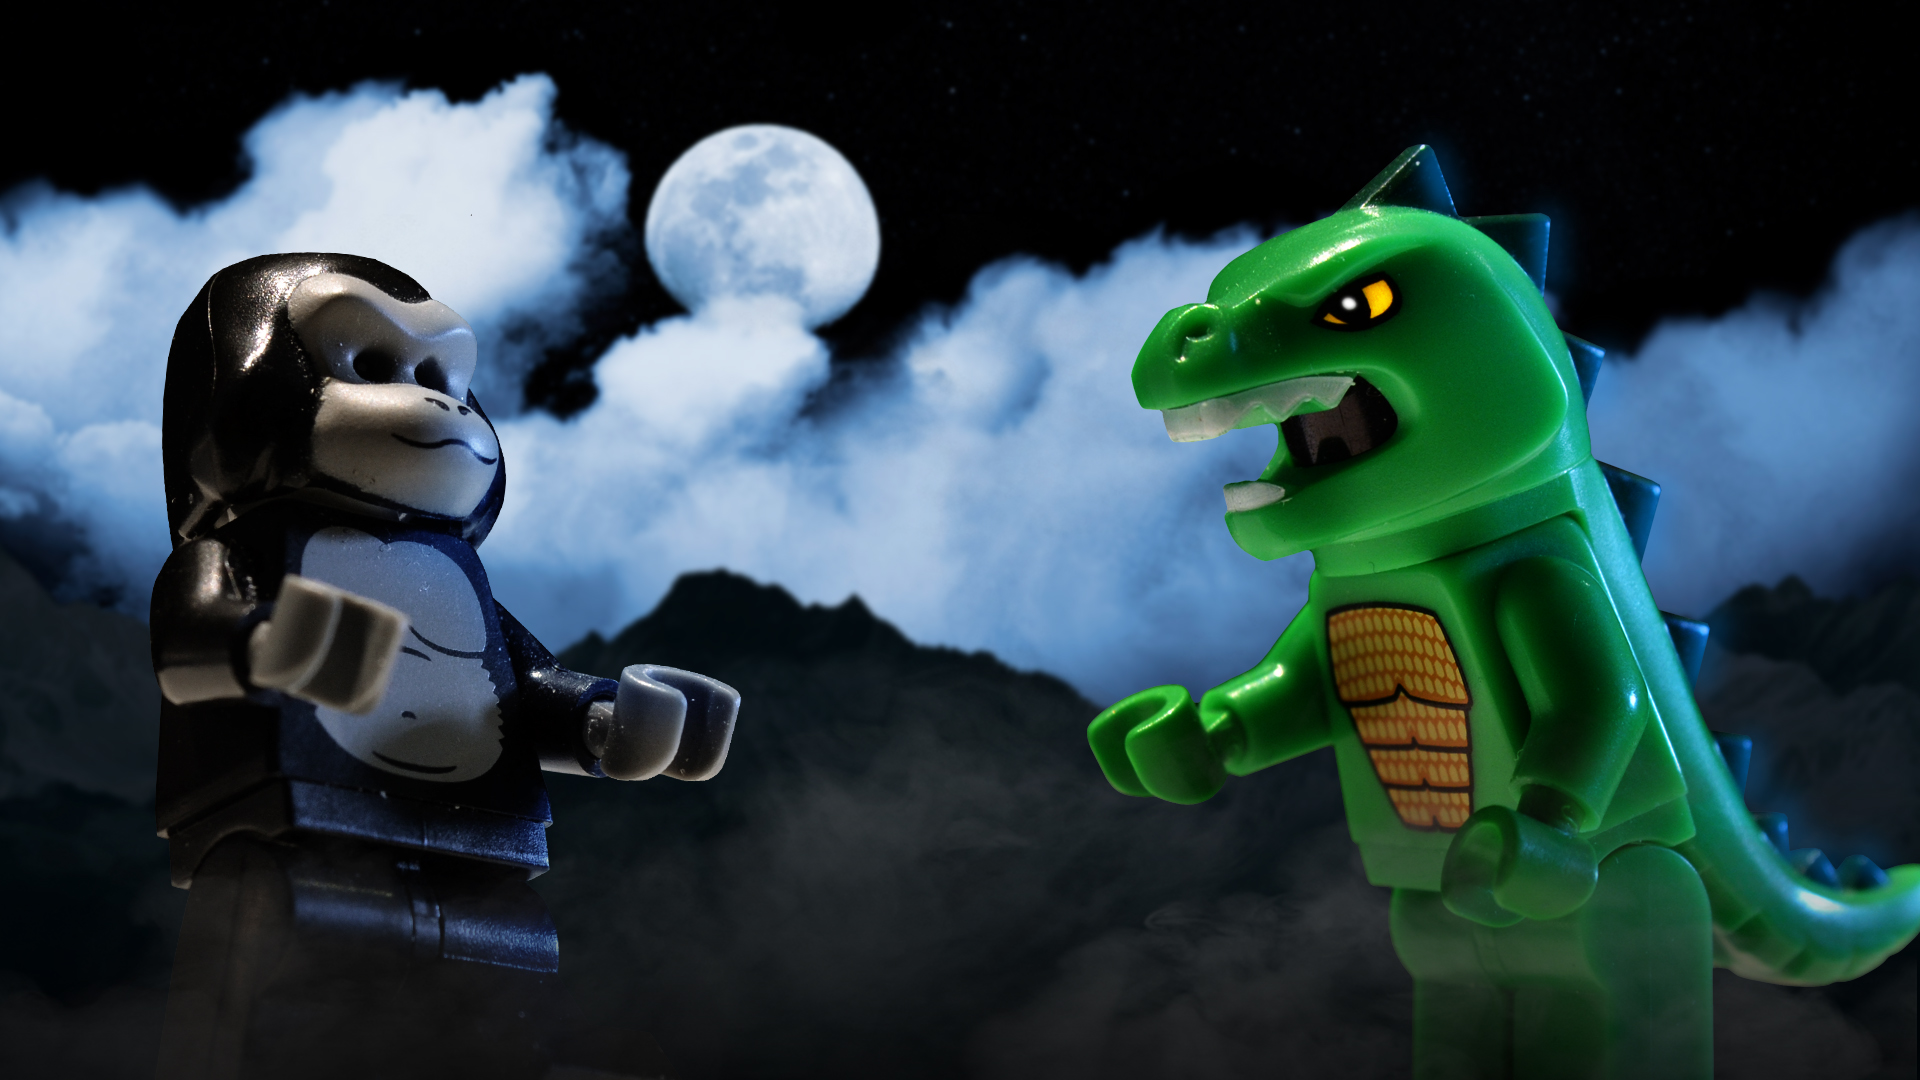 lego godzilla and king kong